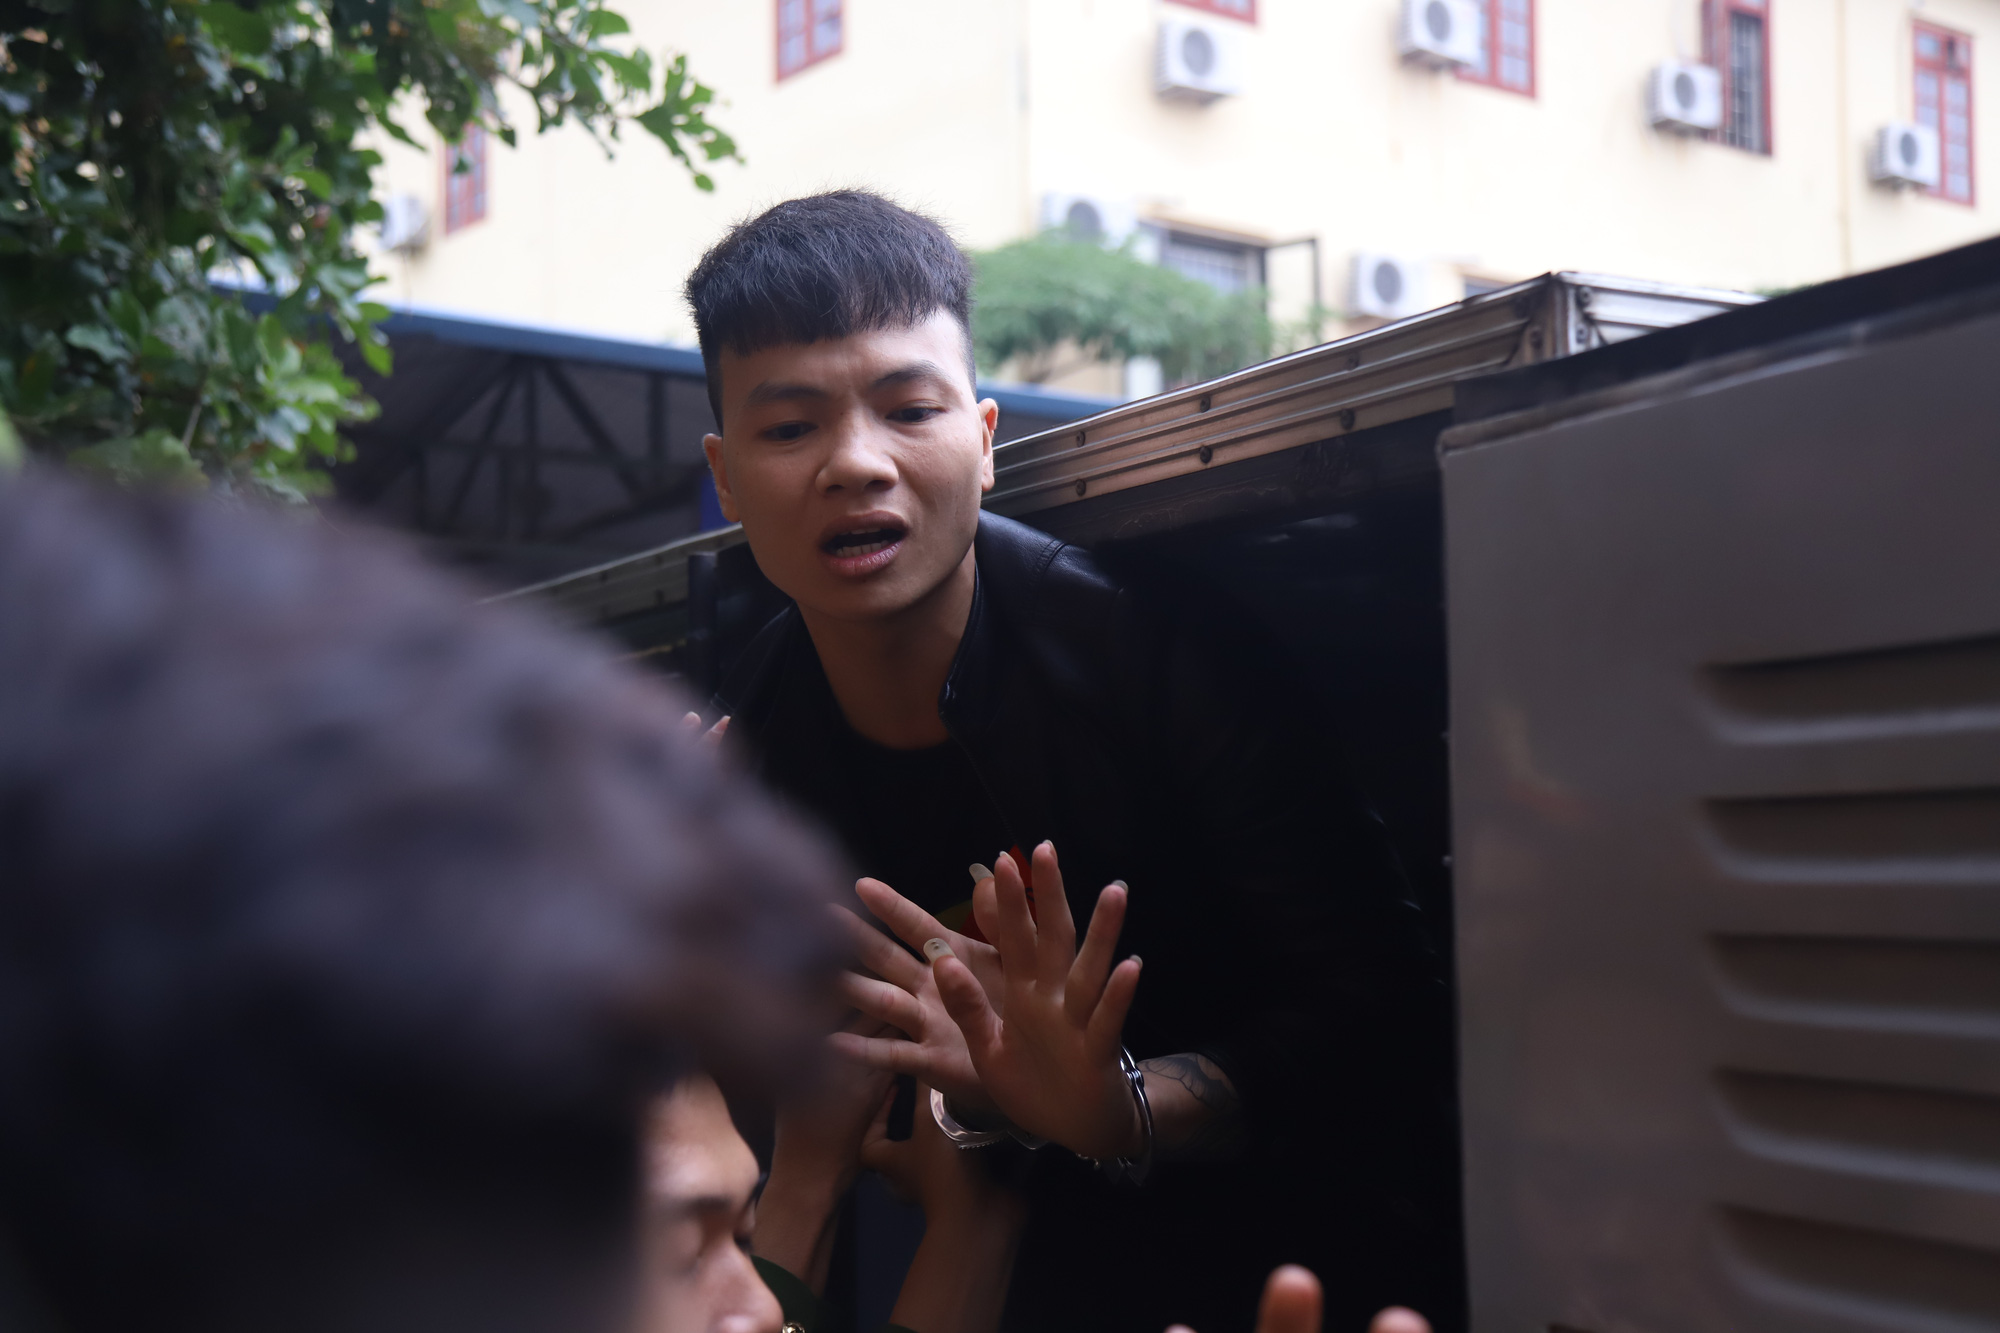 Ngo Ba Kha waves goodbye to his family and friends following a trial in the northern province of Bac Ninh on November 13, 2019. Photo: Danh Trong / Tuoi Tre